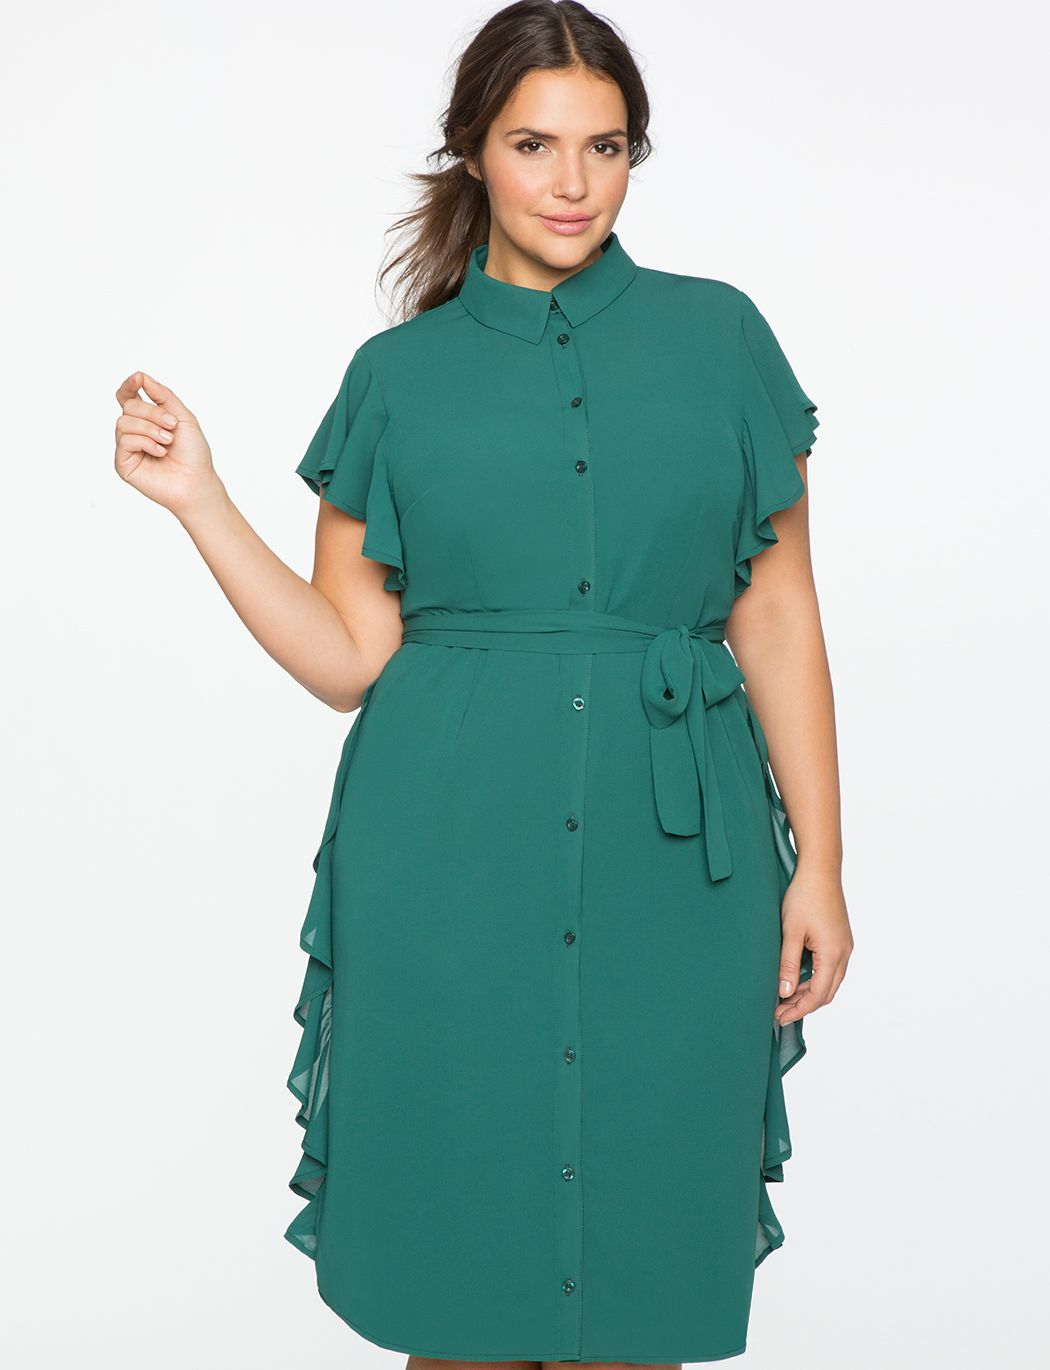 Shirt Dress with Side Tie and Flounce | Women's Plus Size Dresses | ELOQUII